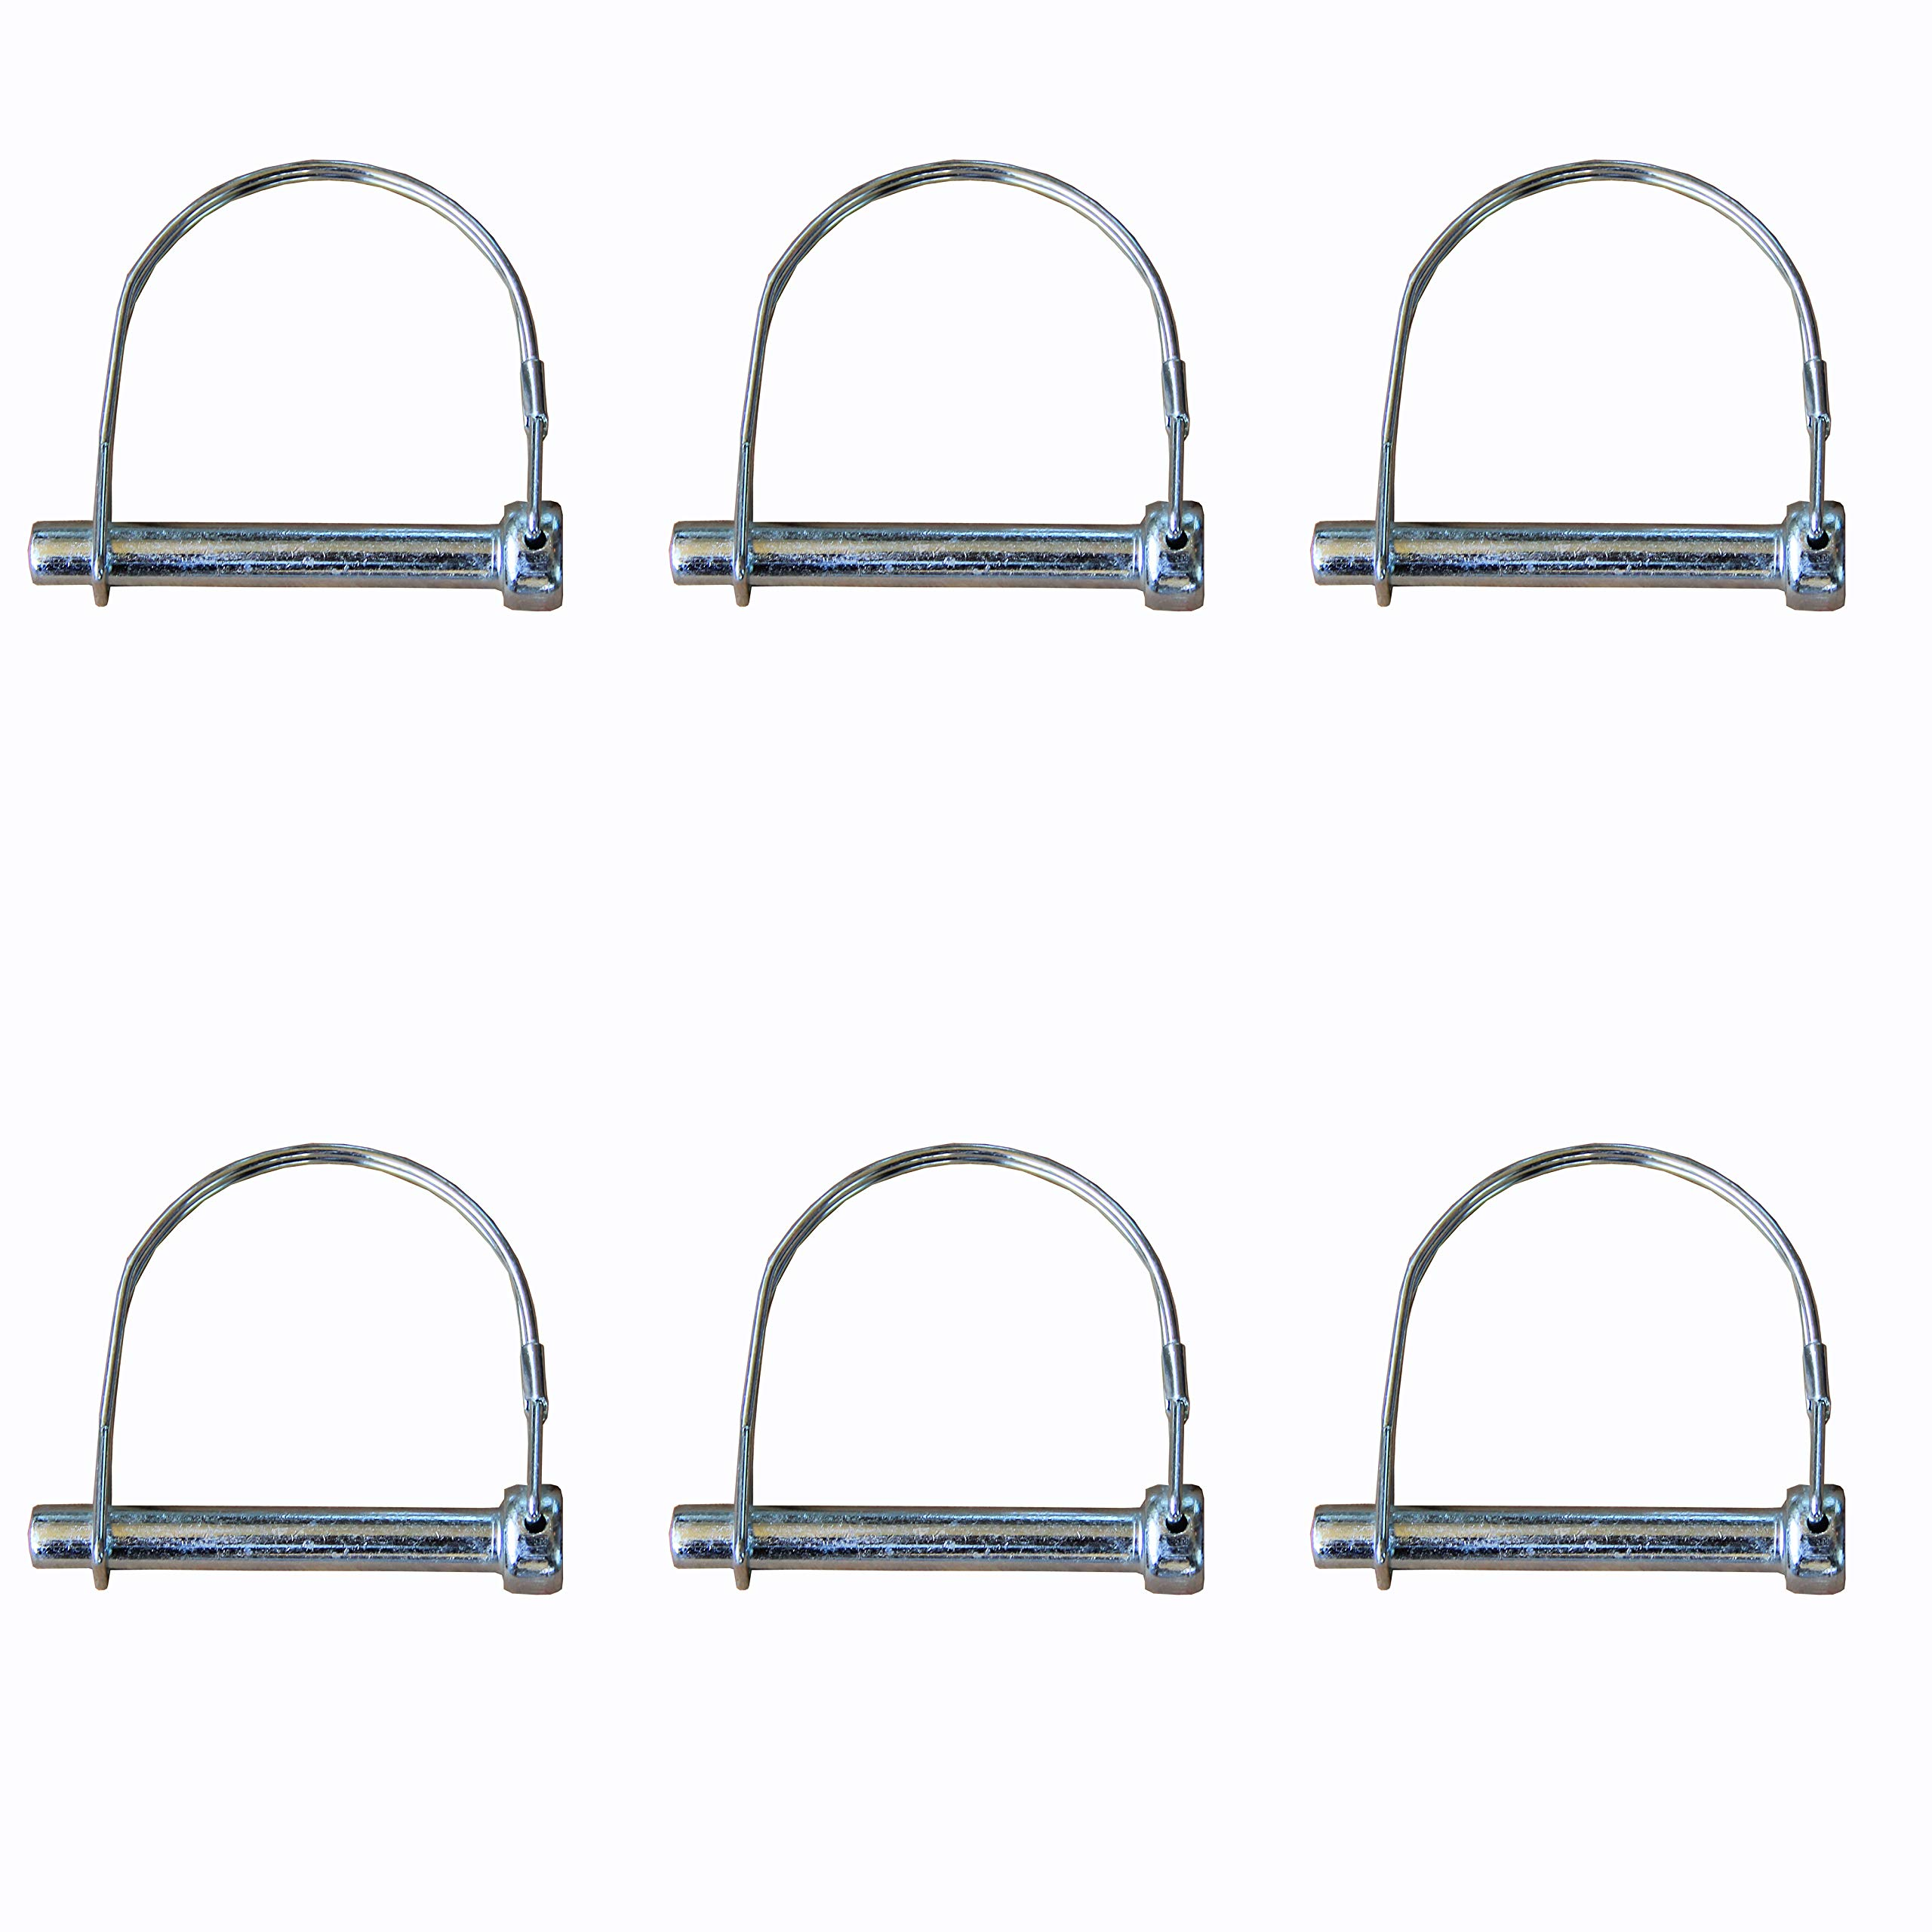 Scaffolding Caster Snap Pin 6 Sets Cycle Brand New Prisms by prisms